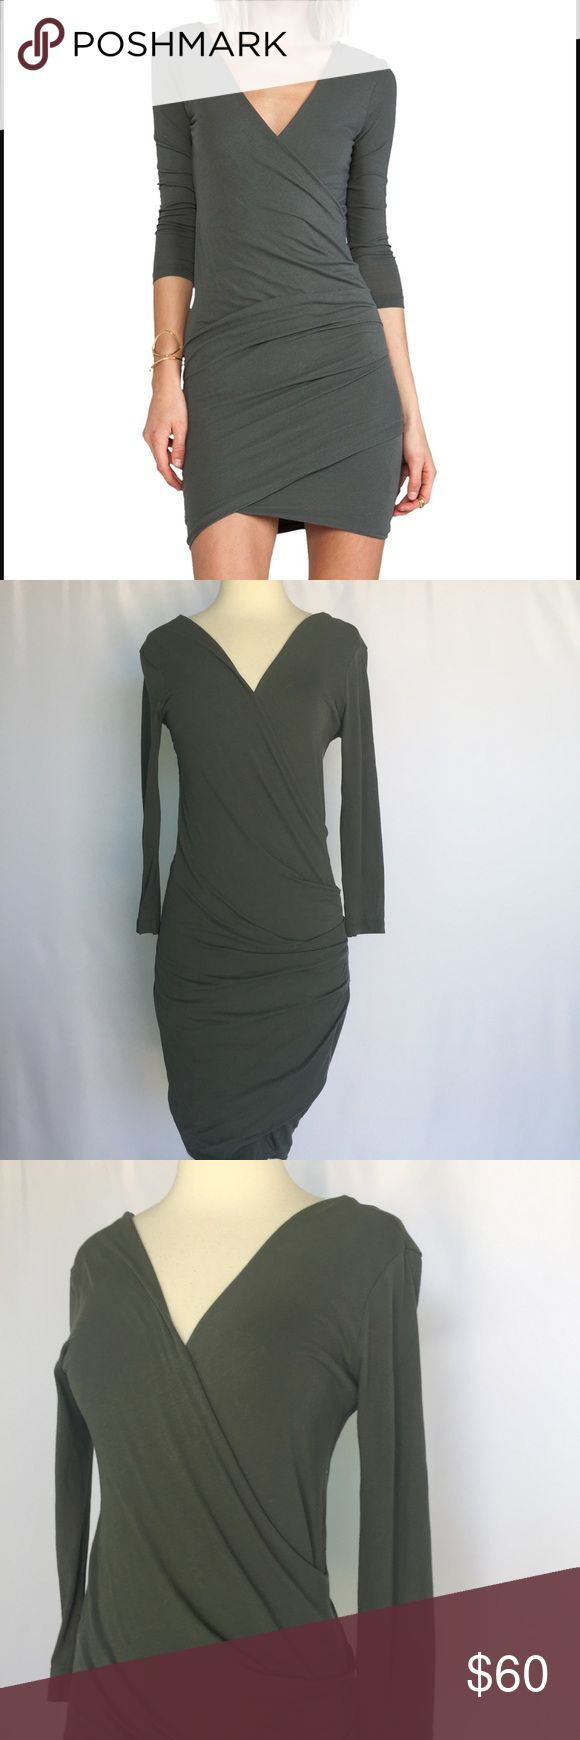 "James Perse Skinny Wrap Tuck Dress Forest Green Gently used condition James Perse Skinny Wrap Tuck Dress Forest Green size 3 (large)- please see measurement guide in photos. Approximate length 39"", sleeve length 19"". James Perse Dresses Long Sleeve"